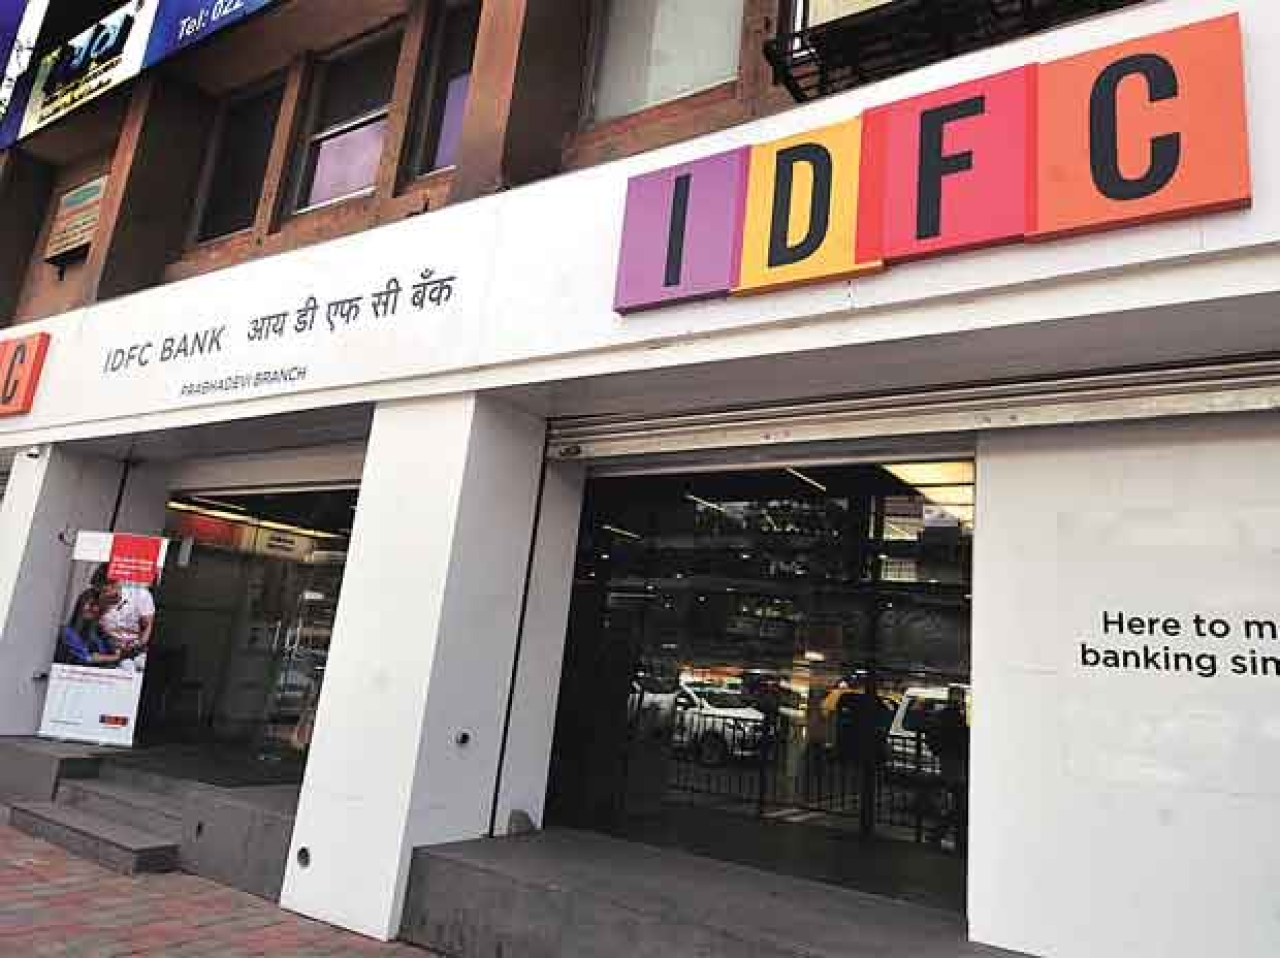 A branch of IDFC bank.